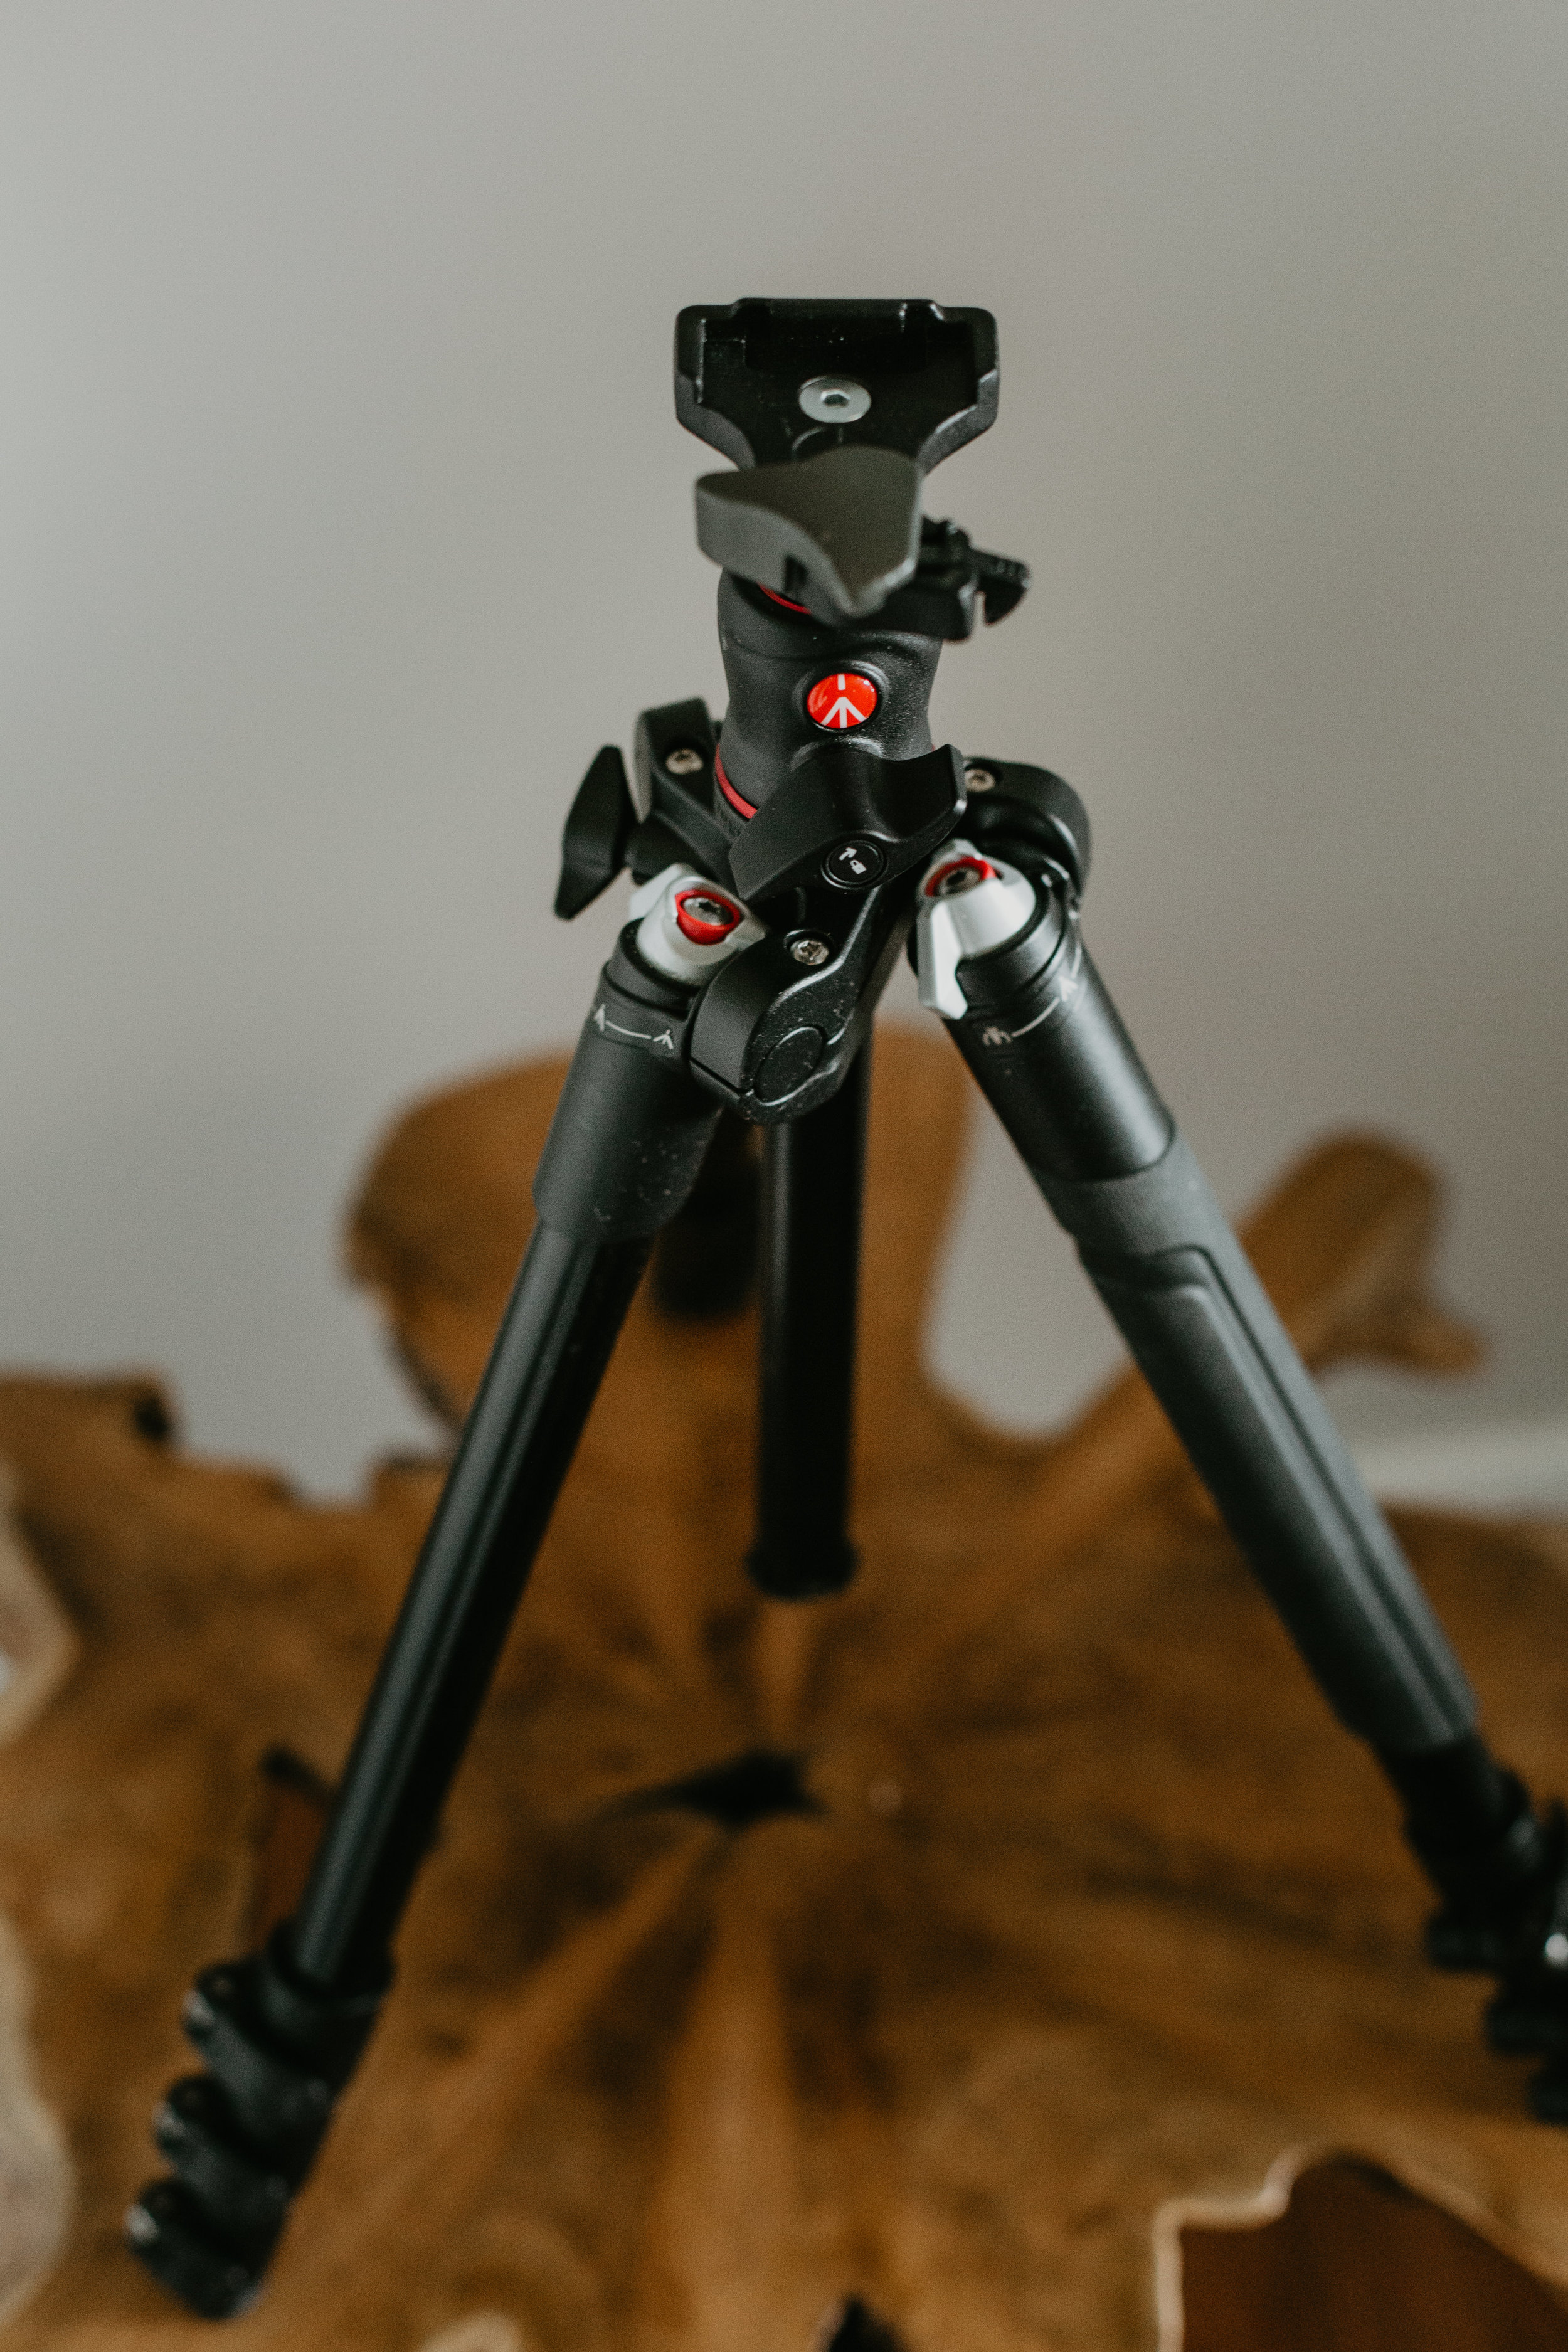 Nicole-daacke-photography-recommended gear-8.jpg